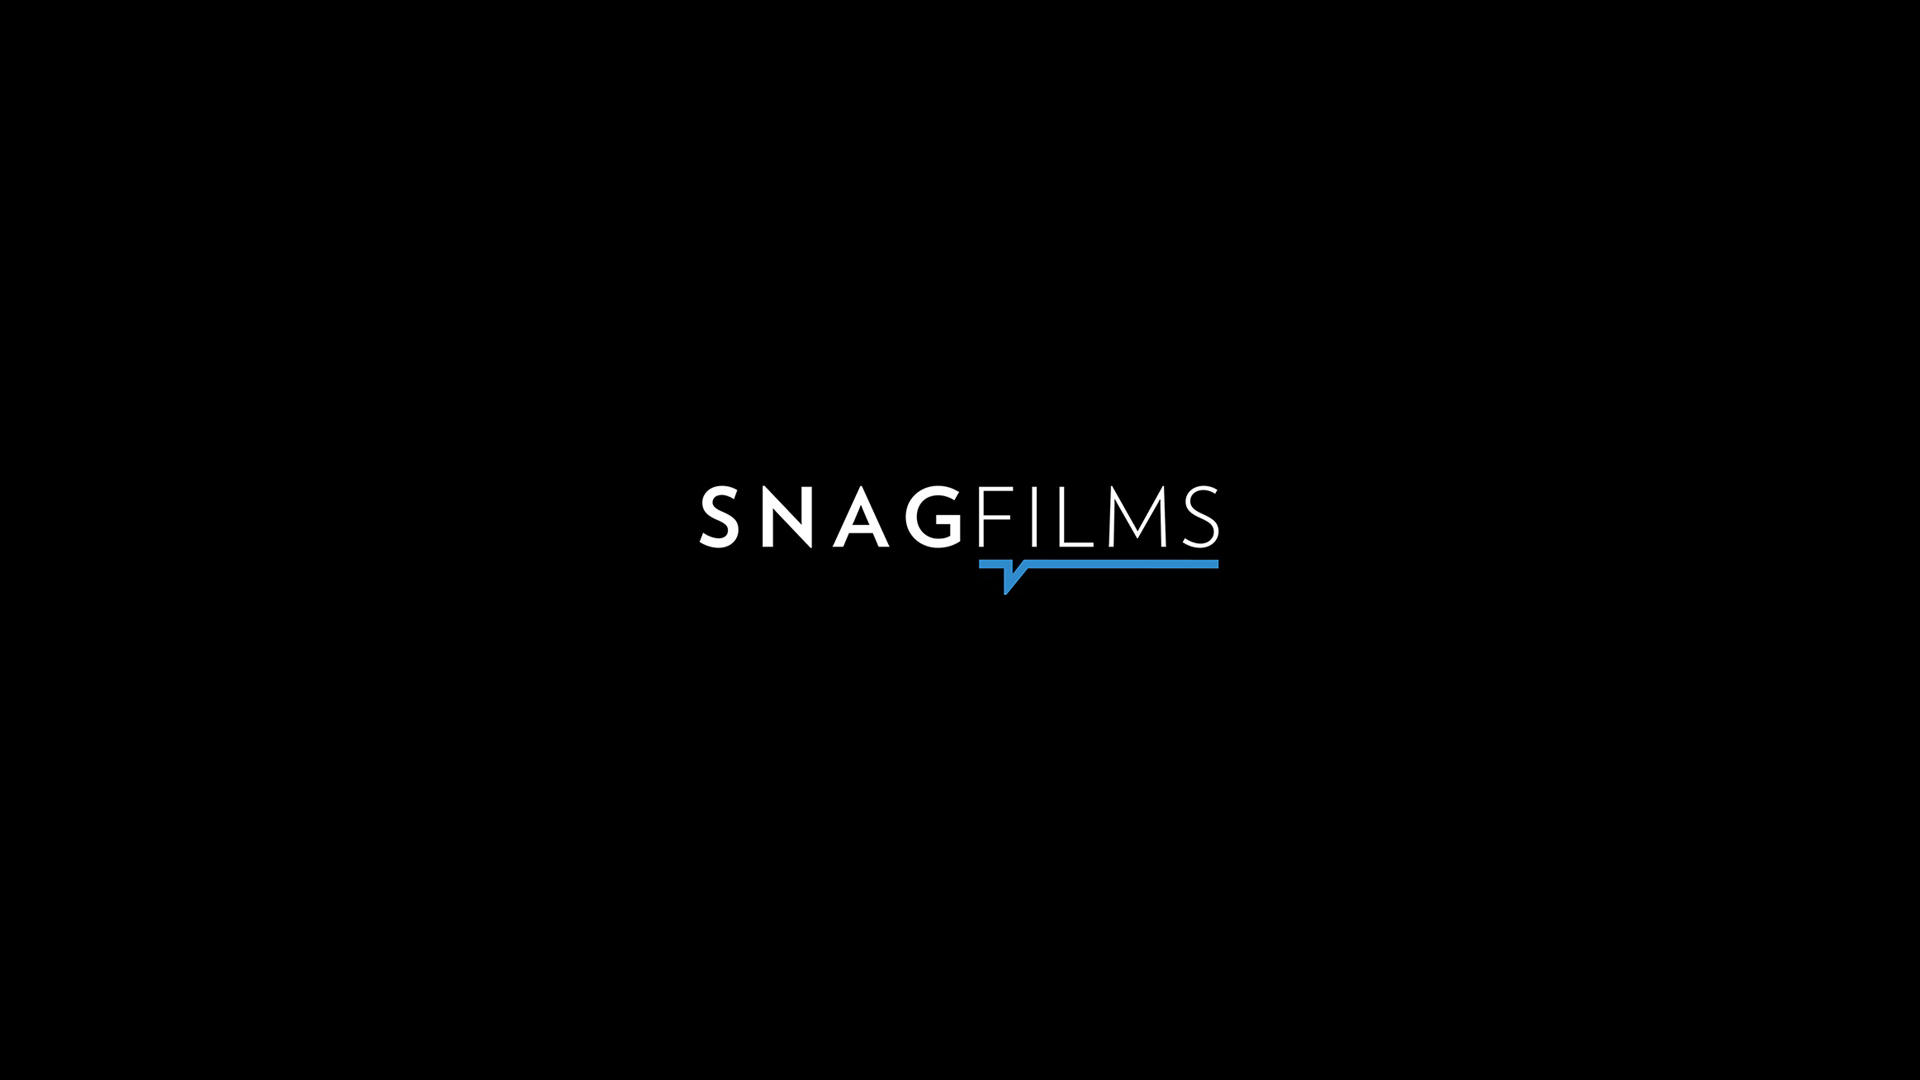 Get SnagFilms - Watch Free Movies and TV Shows - Microsoft